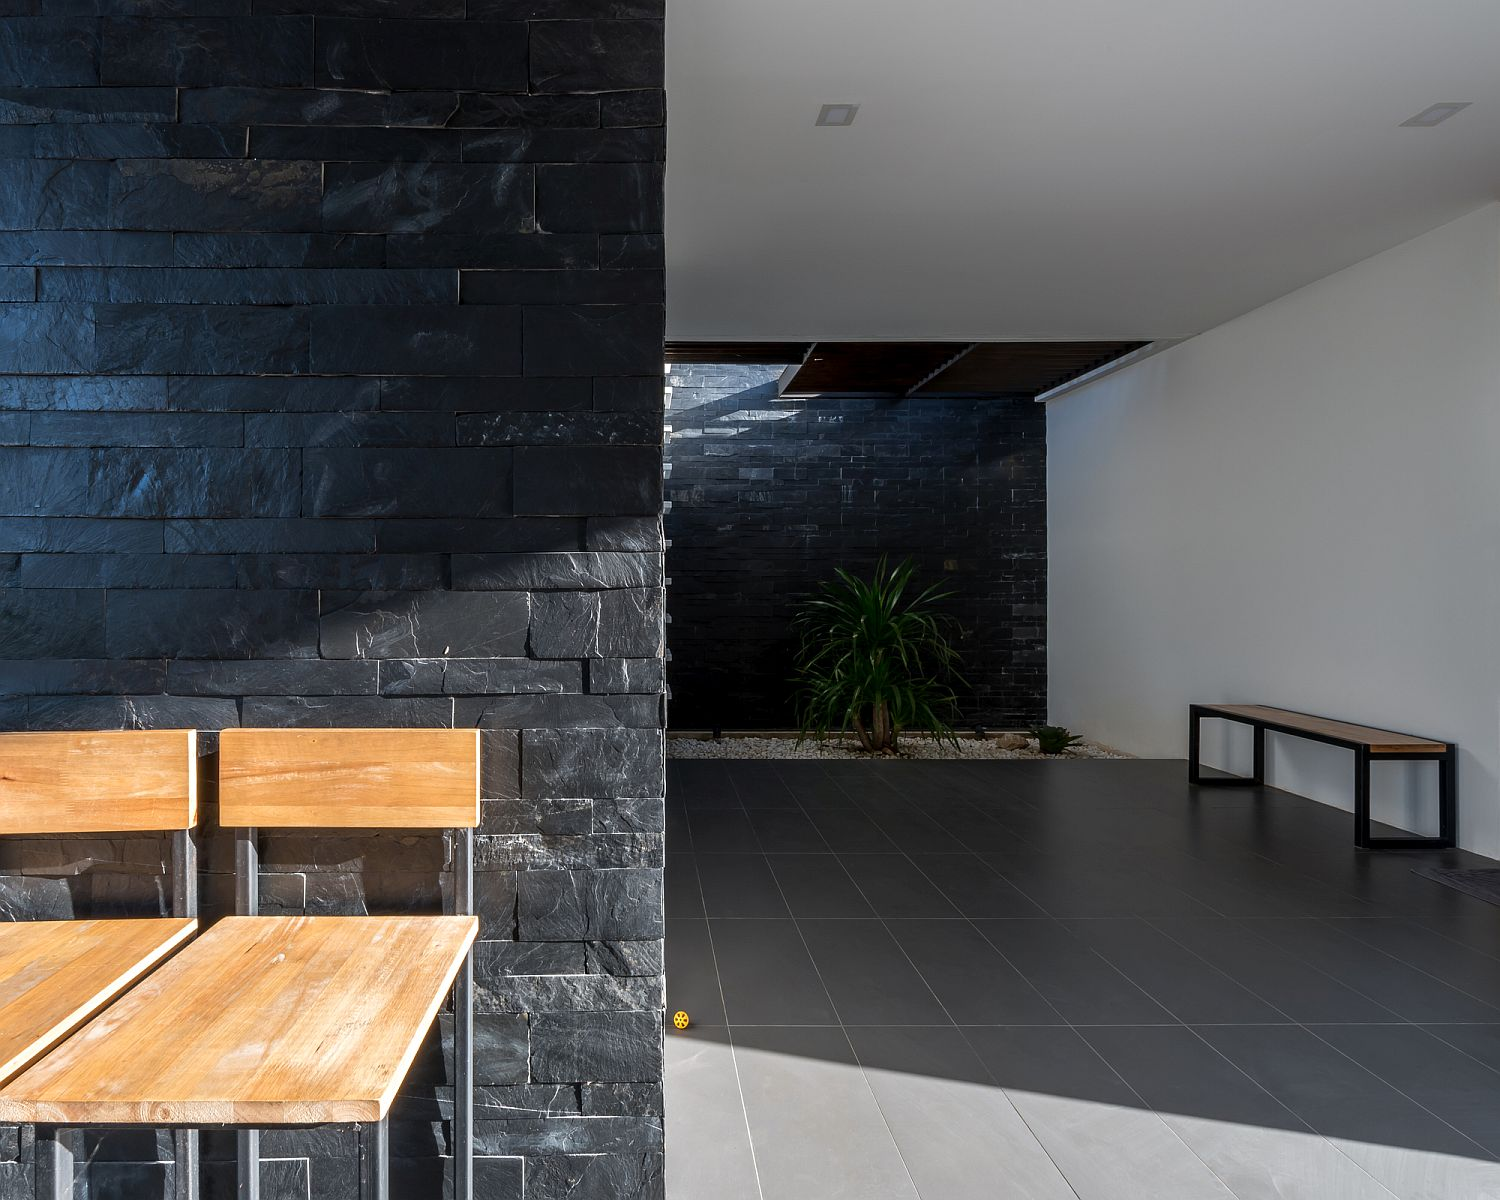 Stone wall becomes an intergral part of the contemporary interior